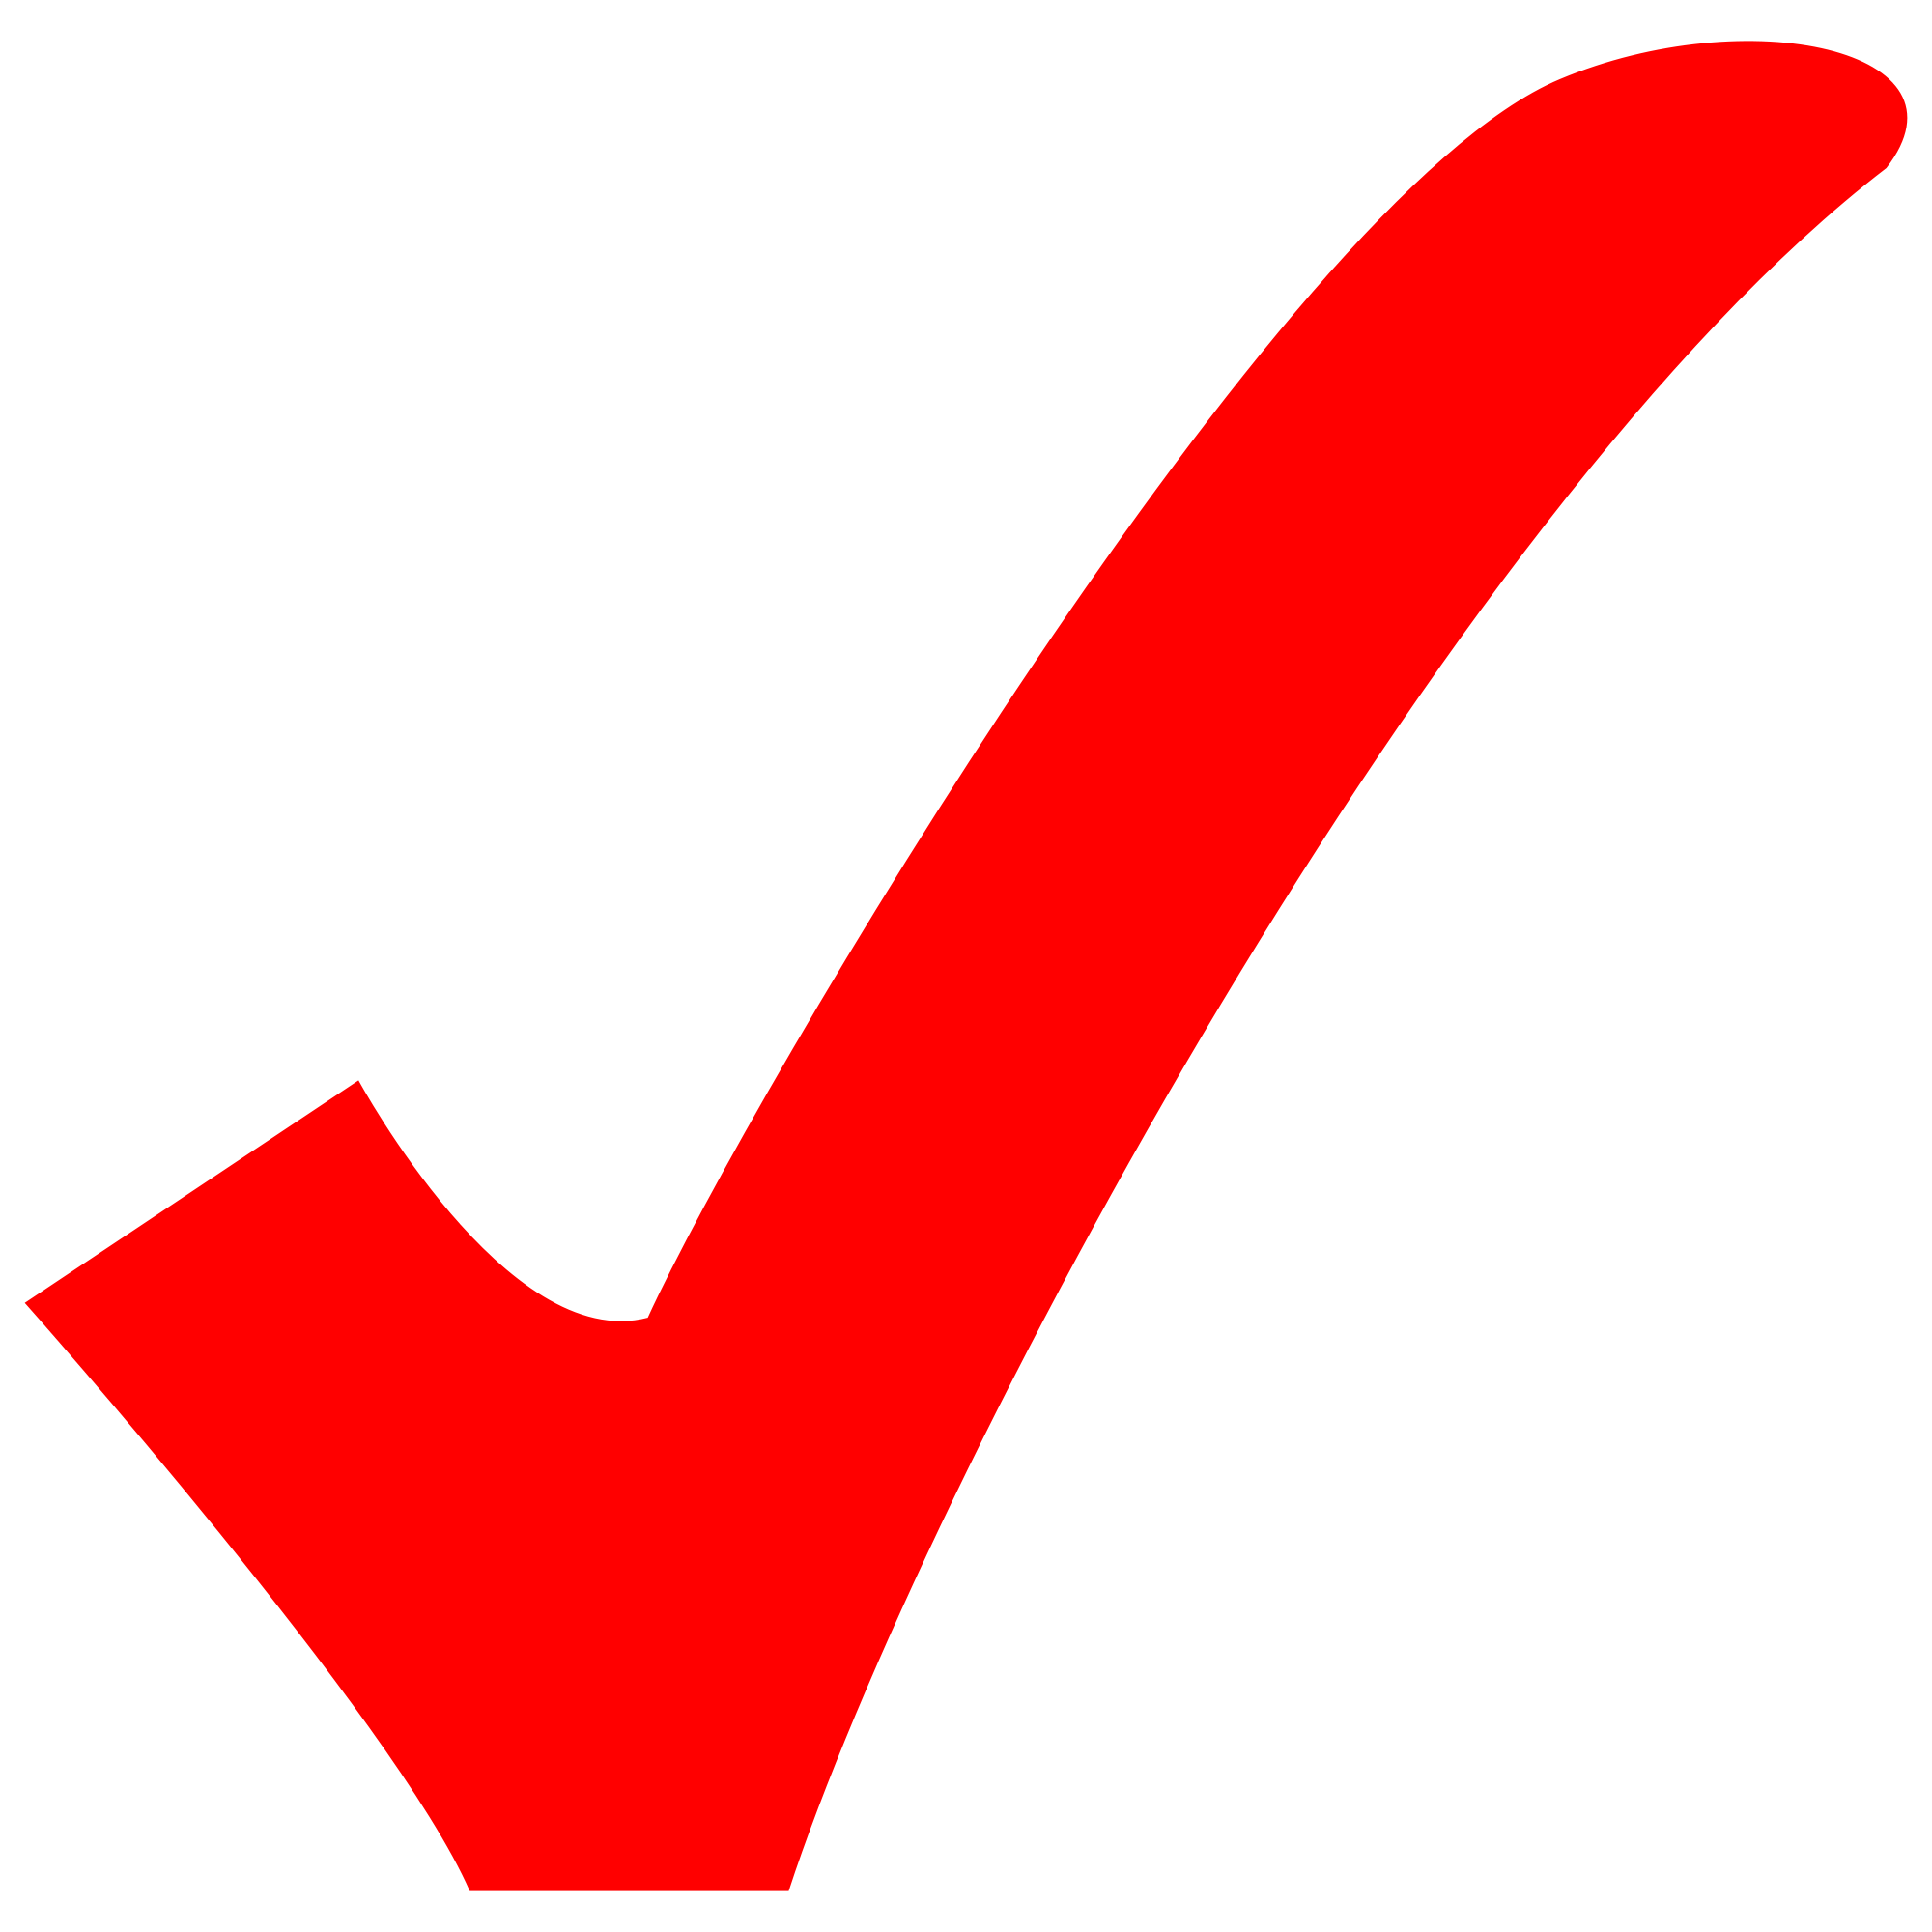 Check mark png transparent. File red svg wikimedia